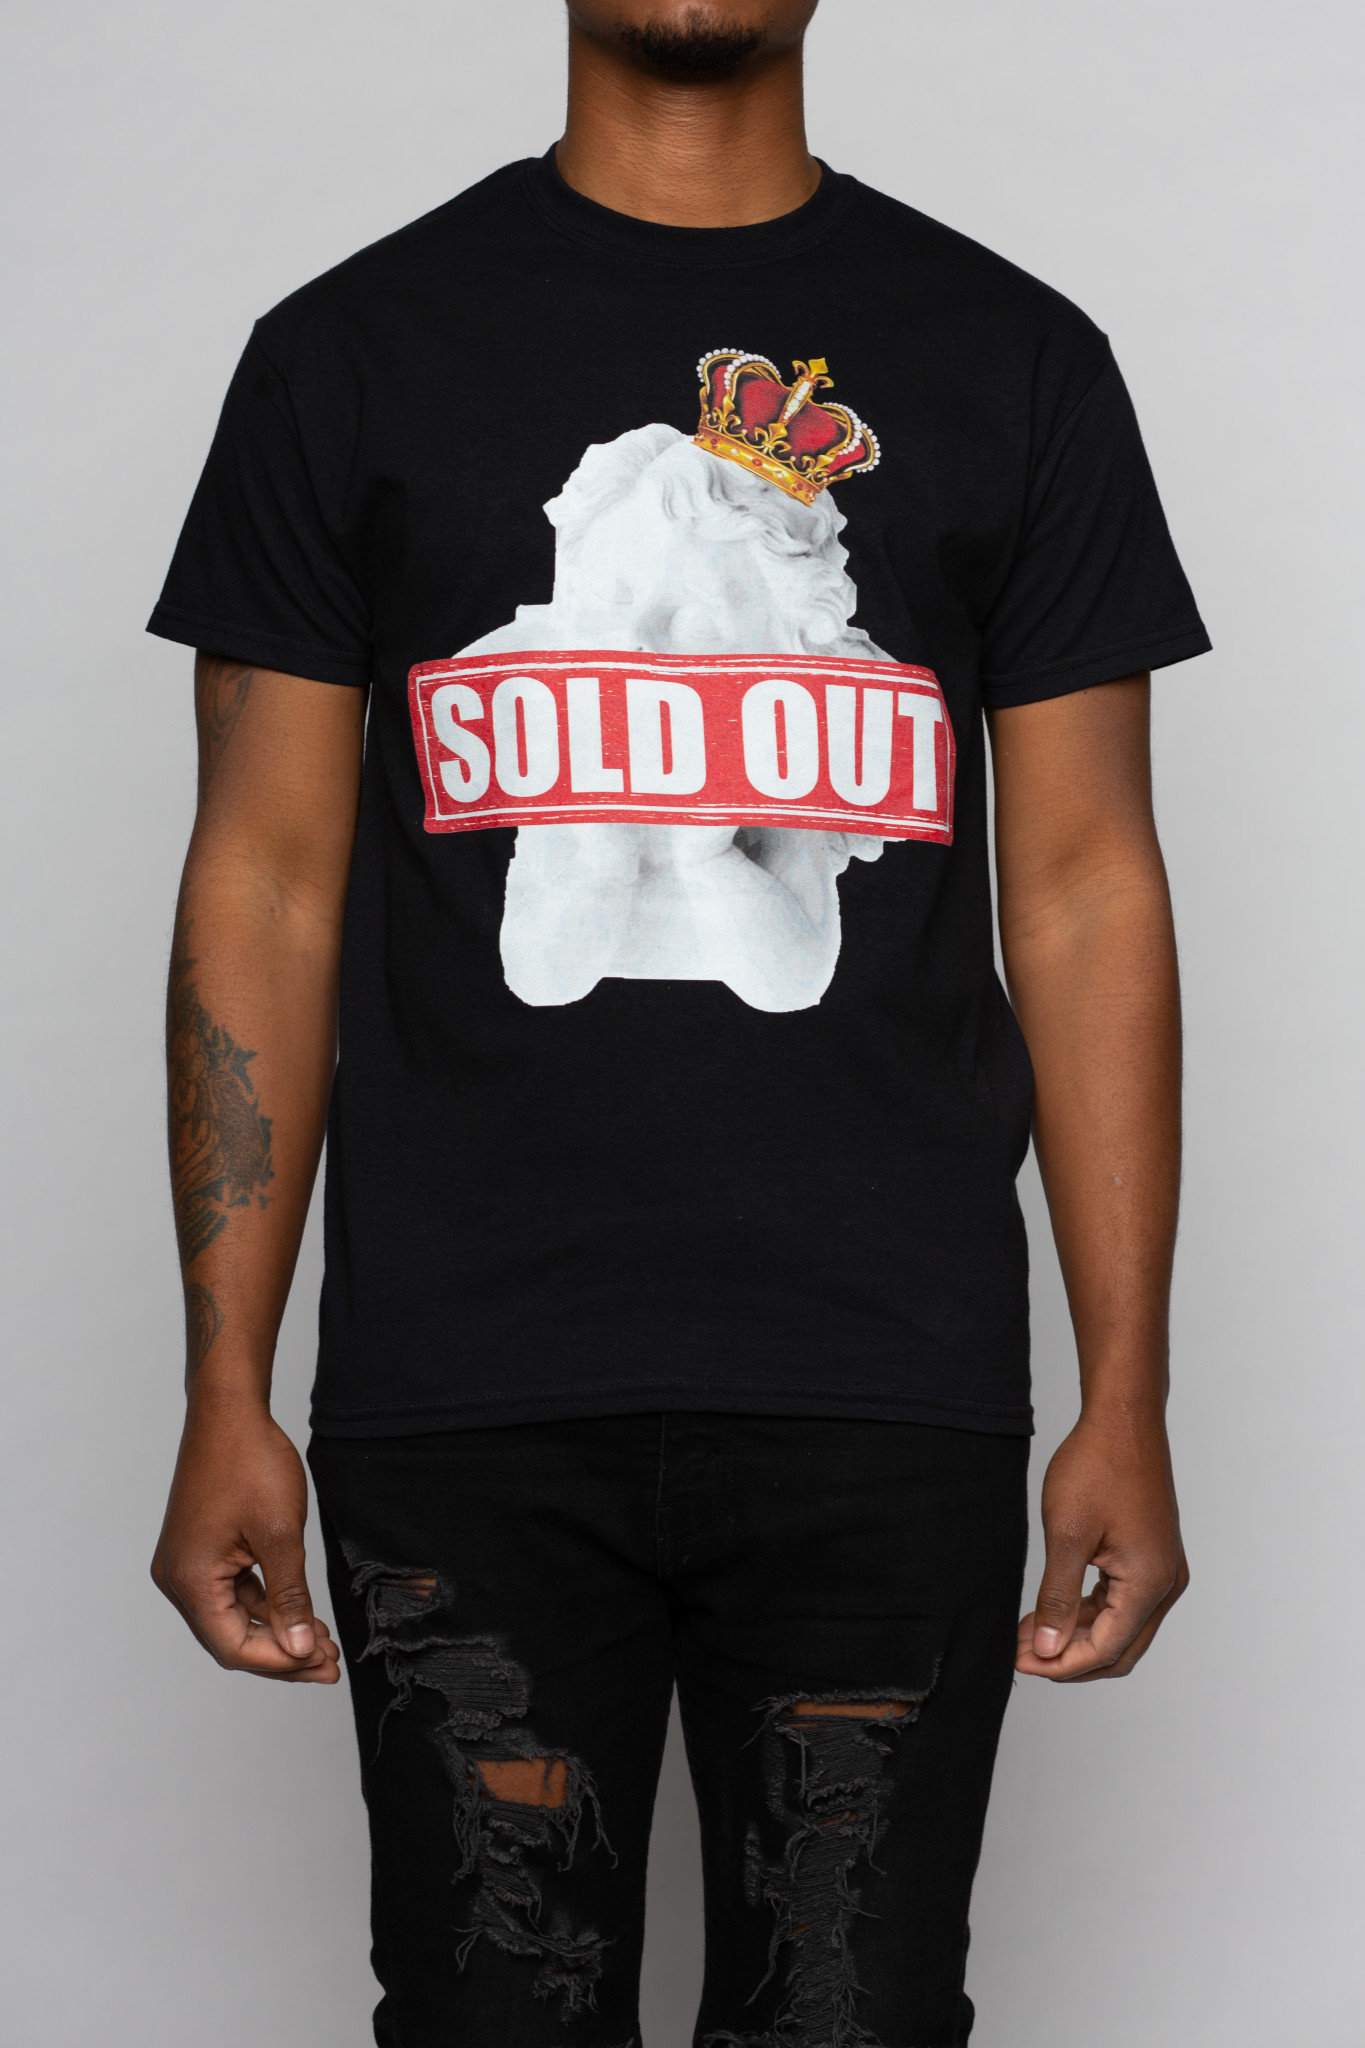 Sold Out Graphic Tee-1